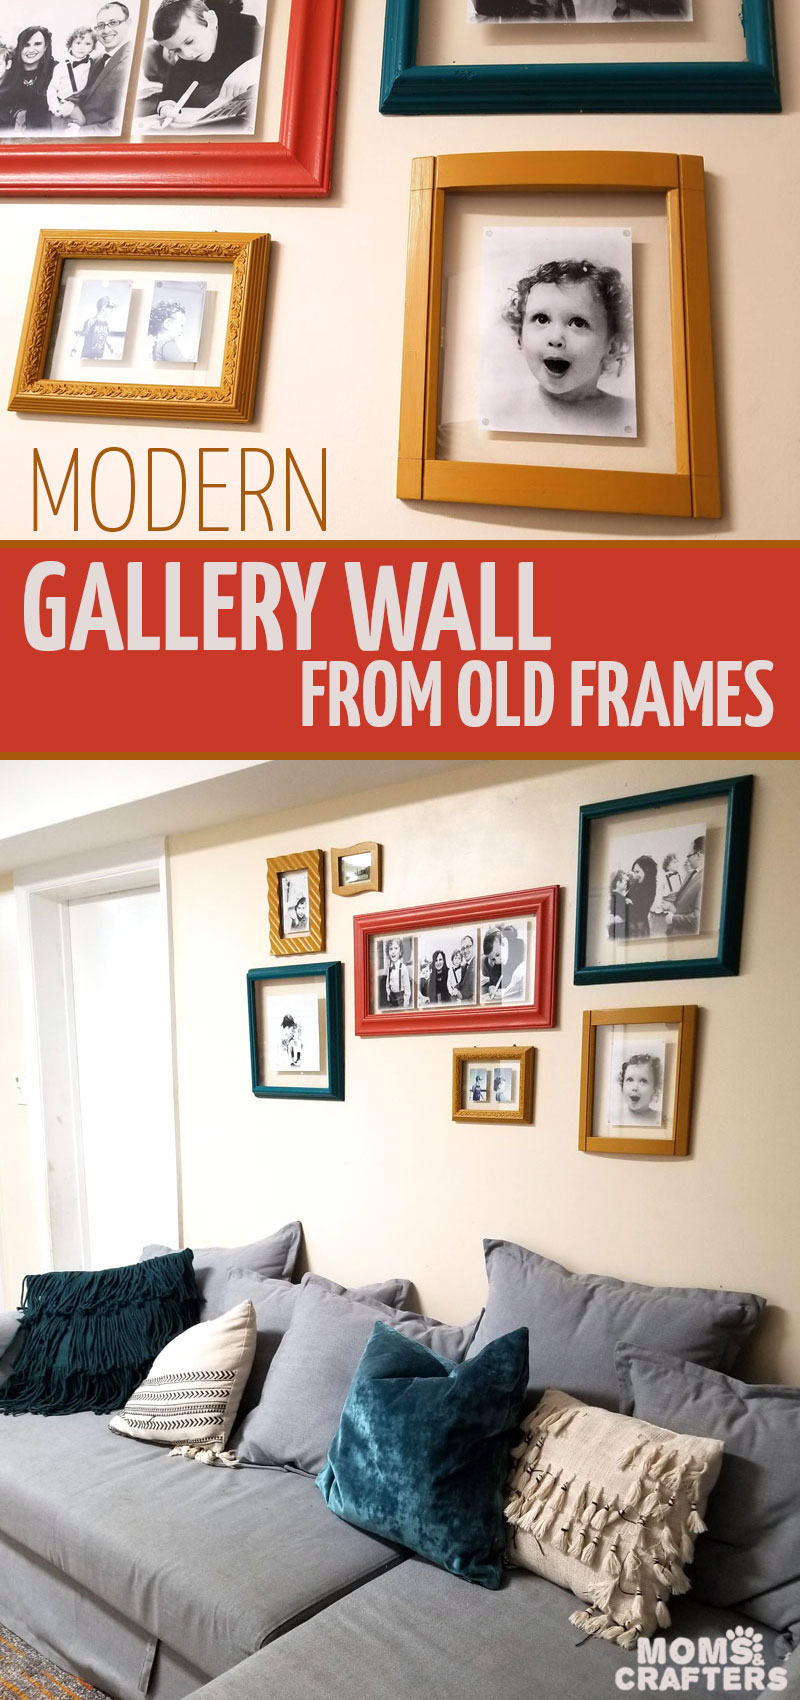 Click to learn how to create your own modern DIY gallery wall from old upcycled frames. These repurposed frames make beautiful contemporary home decor with a pop of color and an easy DIY gallery wall layout idea. #gallerywall #homedecor #upcycled